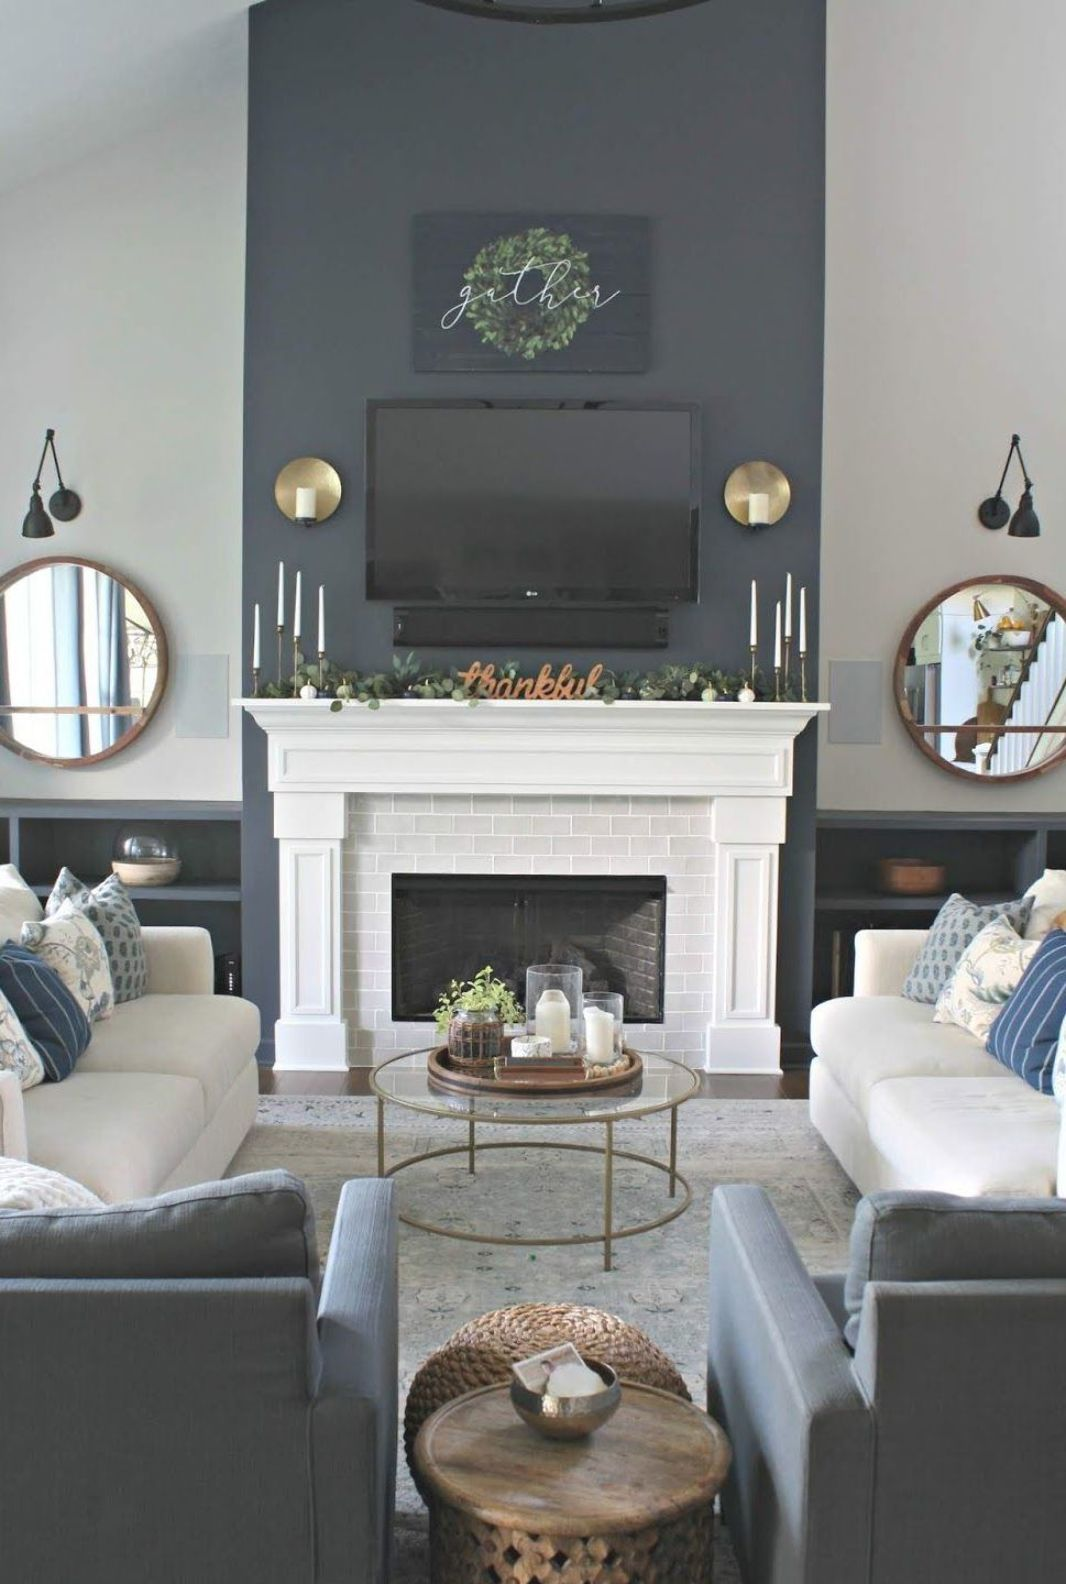 Sw Cyberspace Fireplace Accent D Blue Gray Hides Tv Flanked By Simple Built In Bookcas In 2020 Accent Walls In Living Room Living Room With Fireplace Home Fireplace